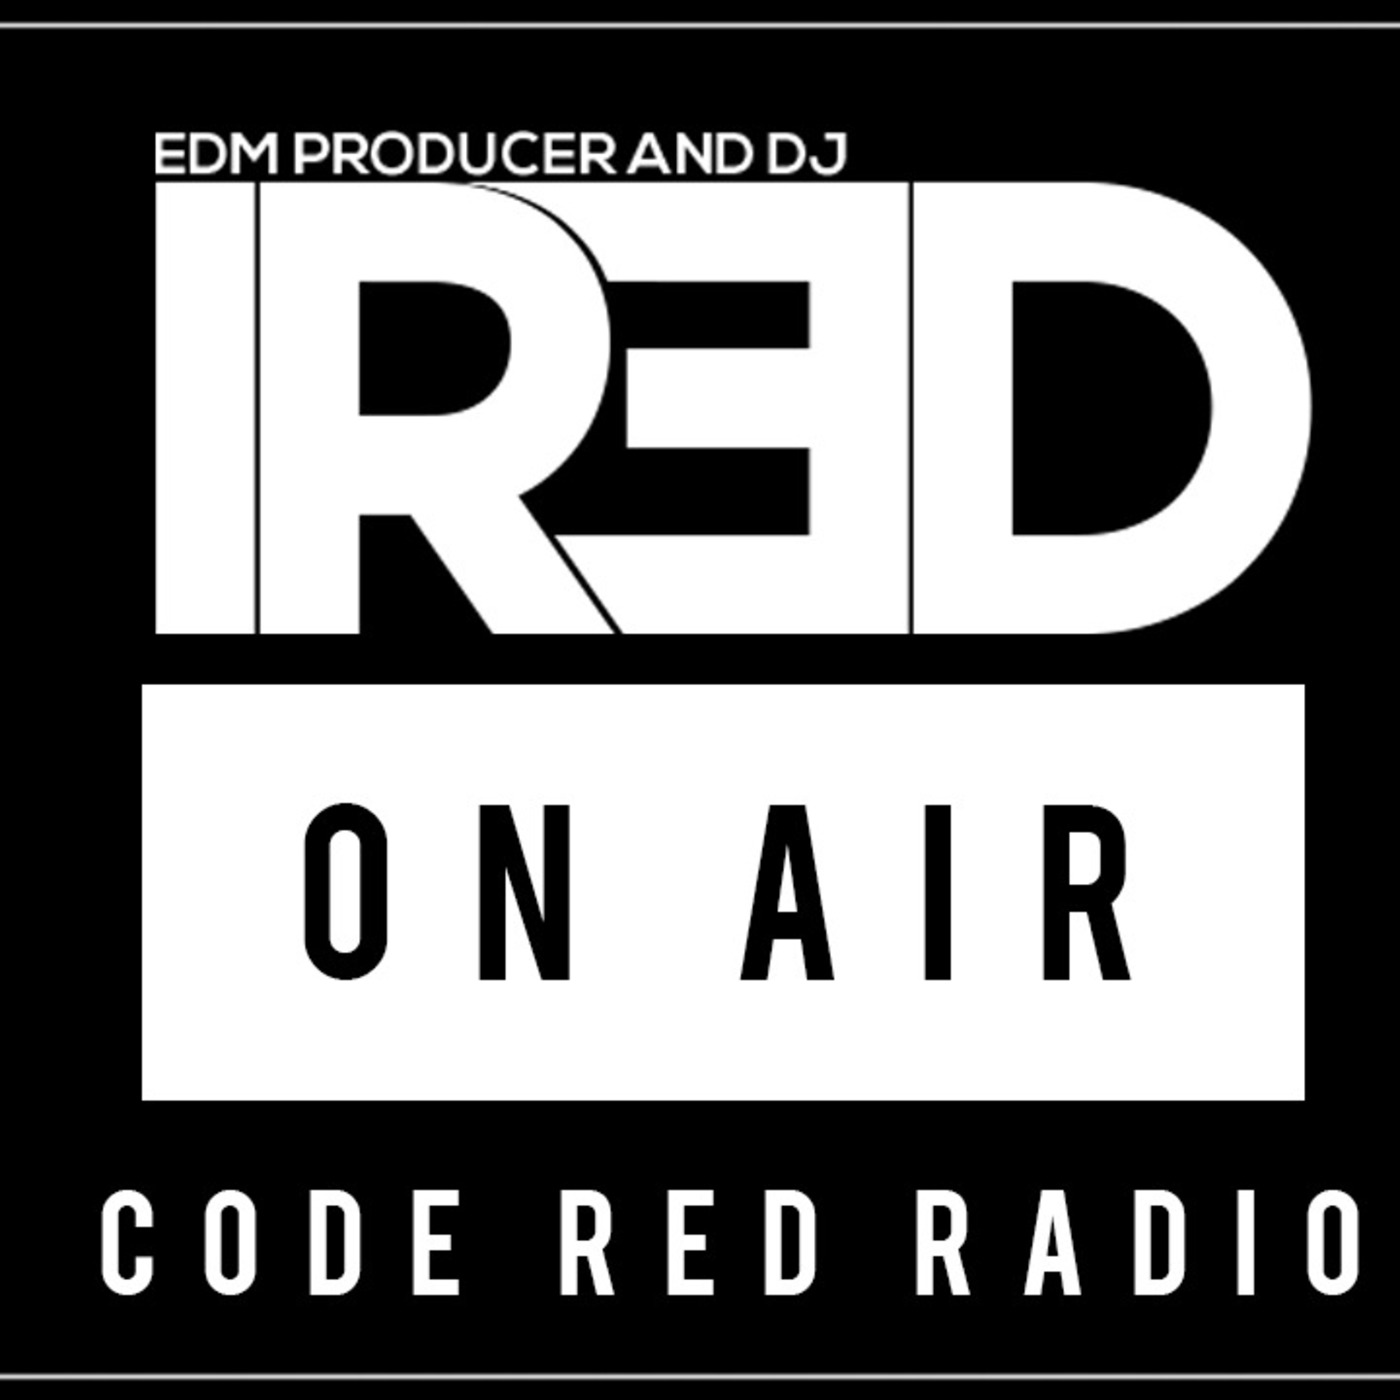 IRed's Code Red Radio